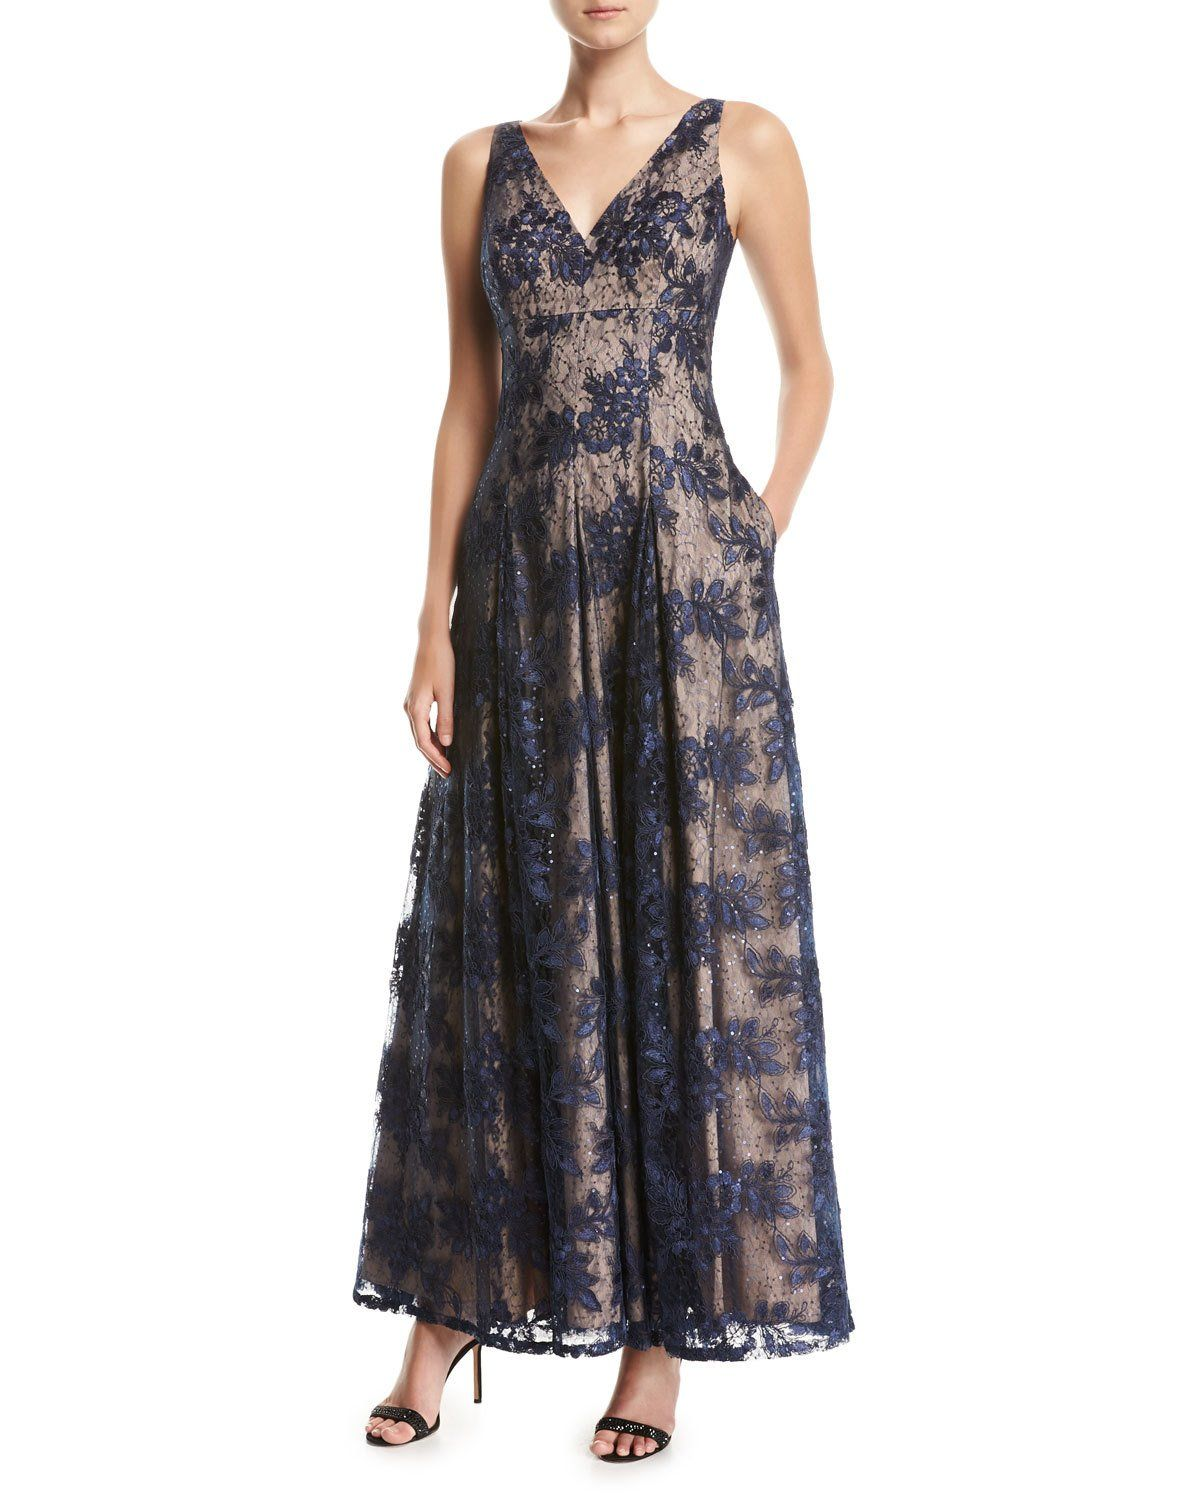 Sleeveless V-Neck Pleated Lace Evening Gown   Lace evening gowns ...